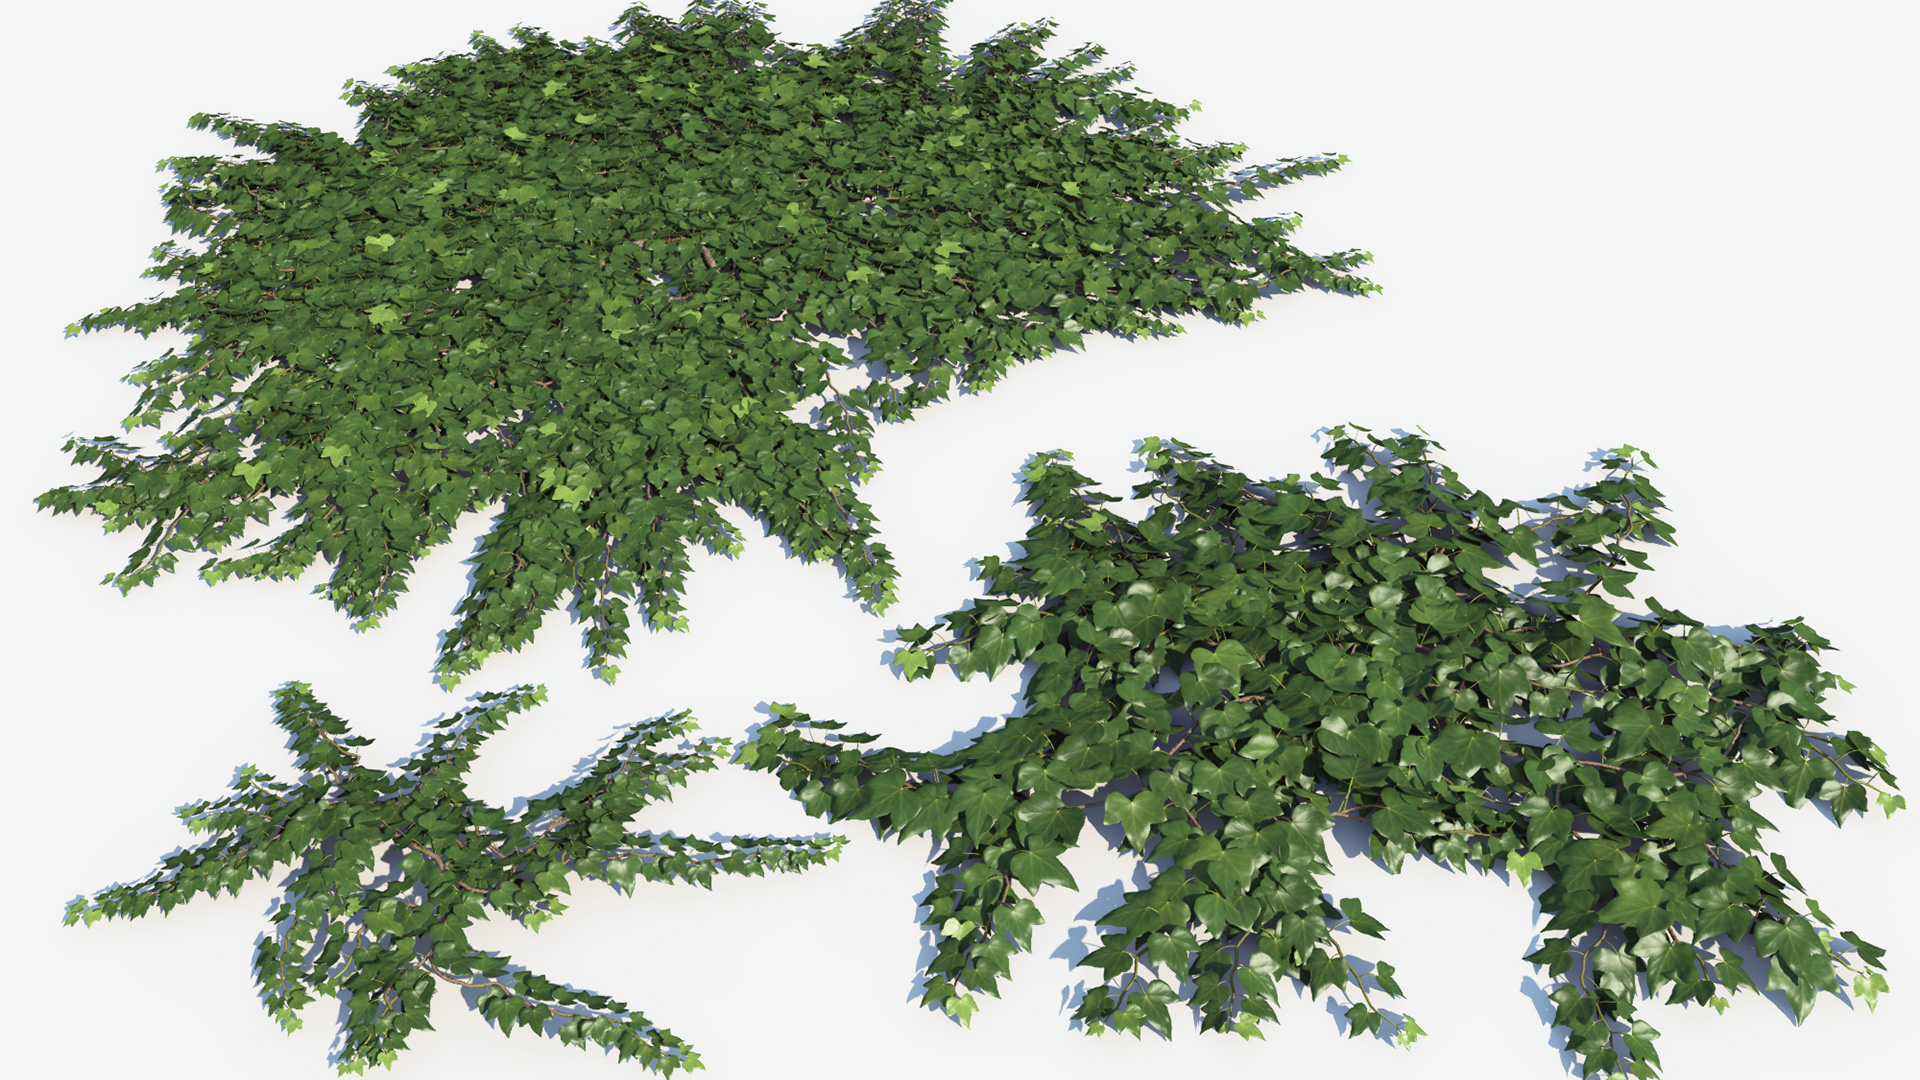 3D model of the Green ivy ground cover Hedera helix ground cover green